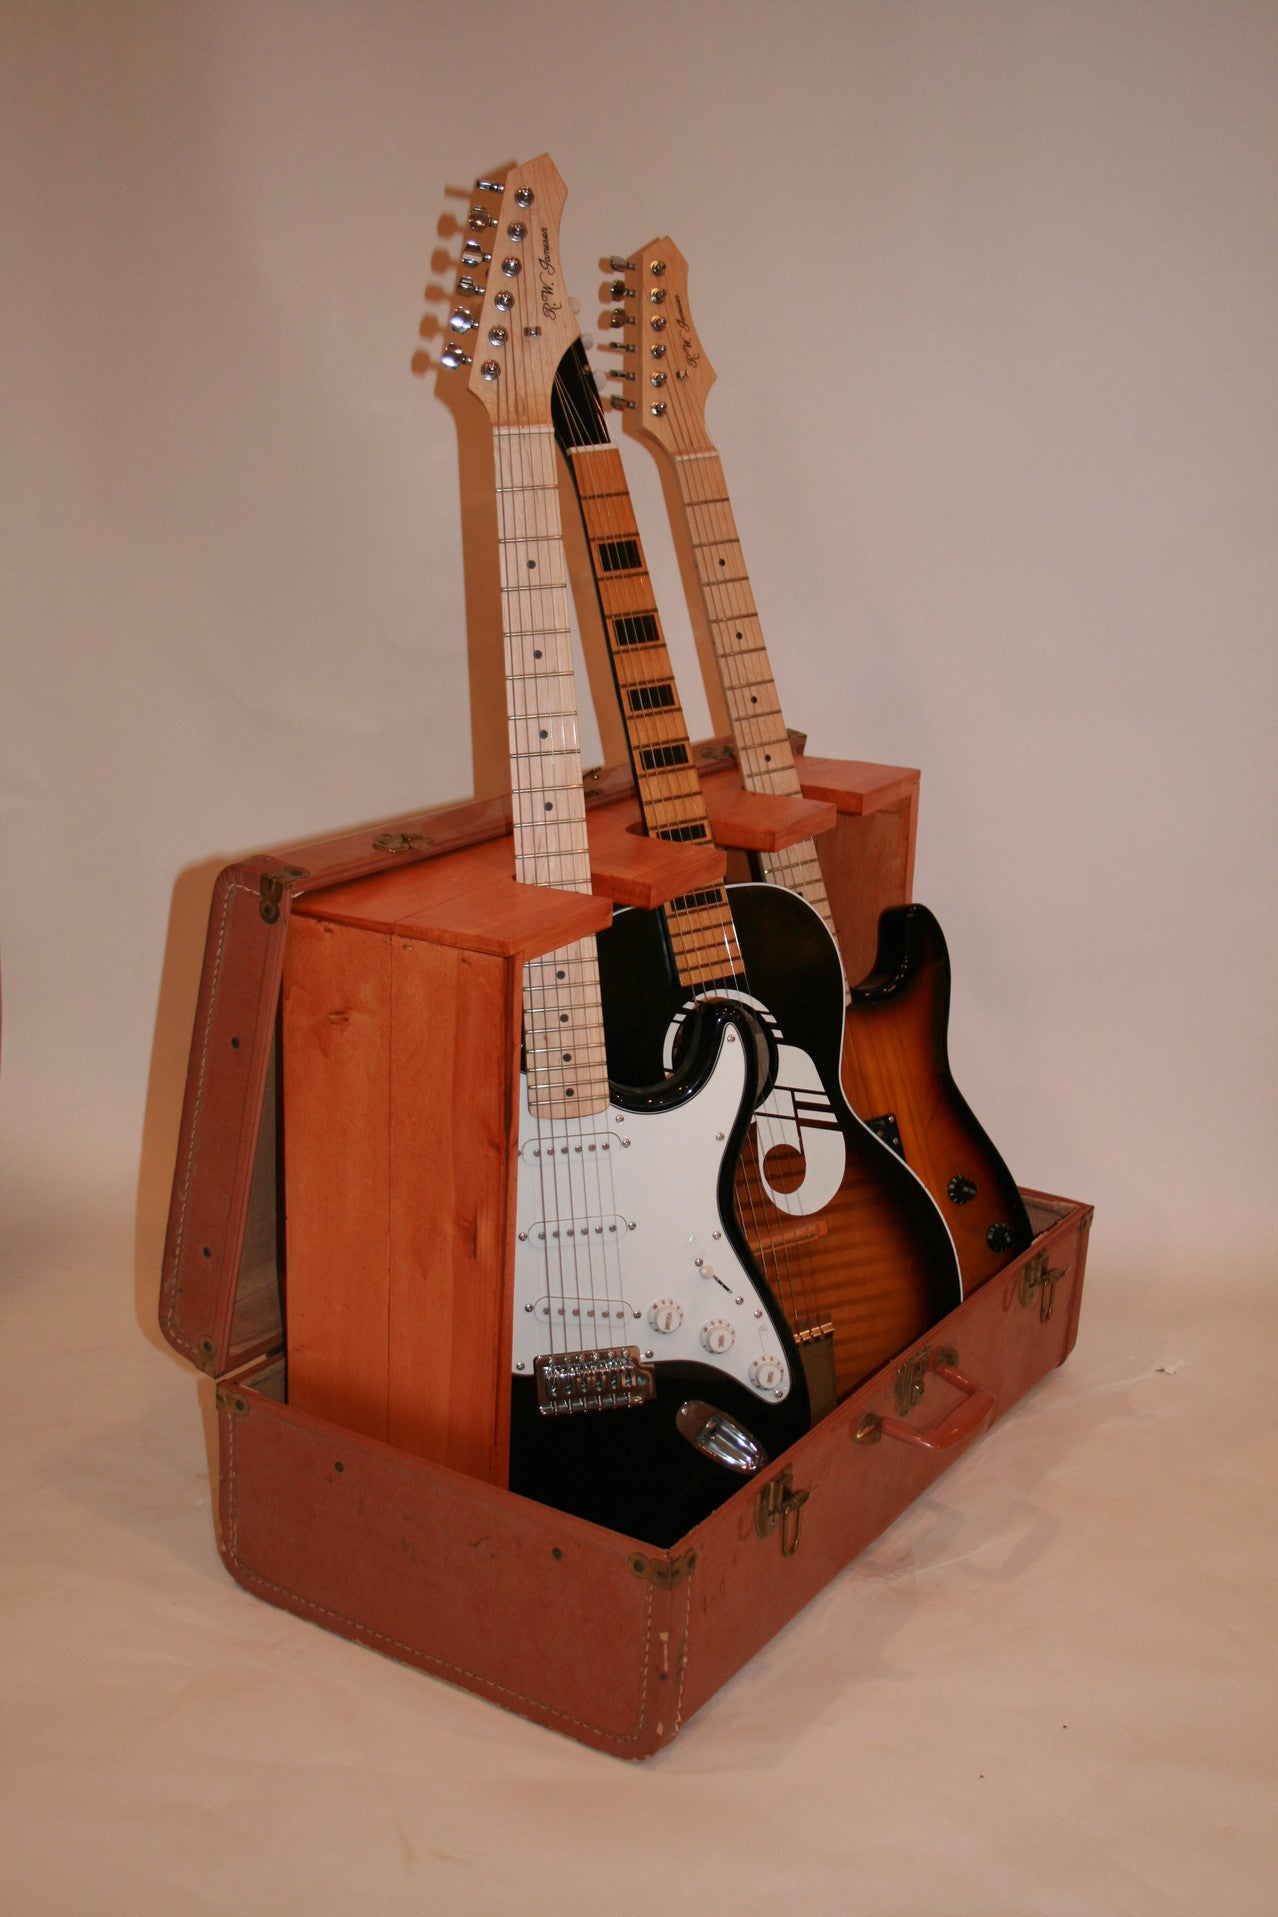 Vintage Suitcase, guitar case